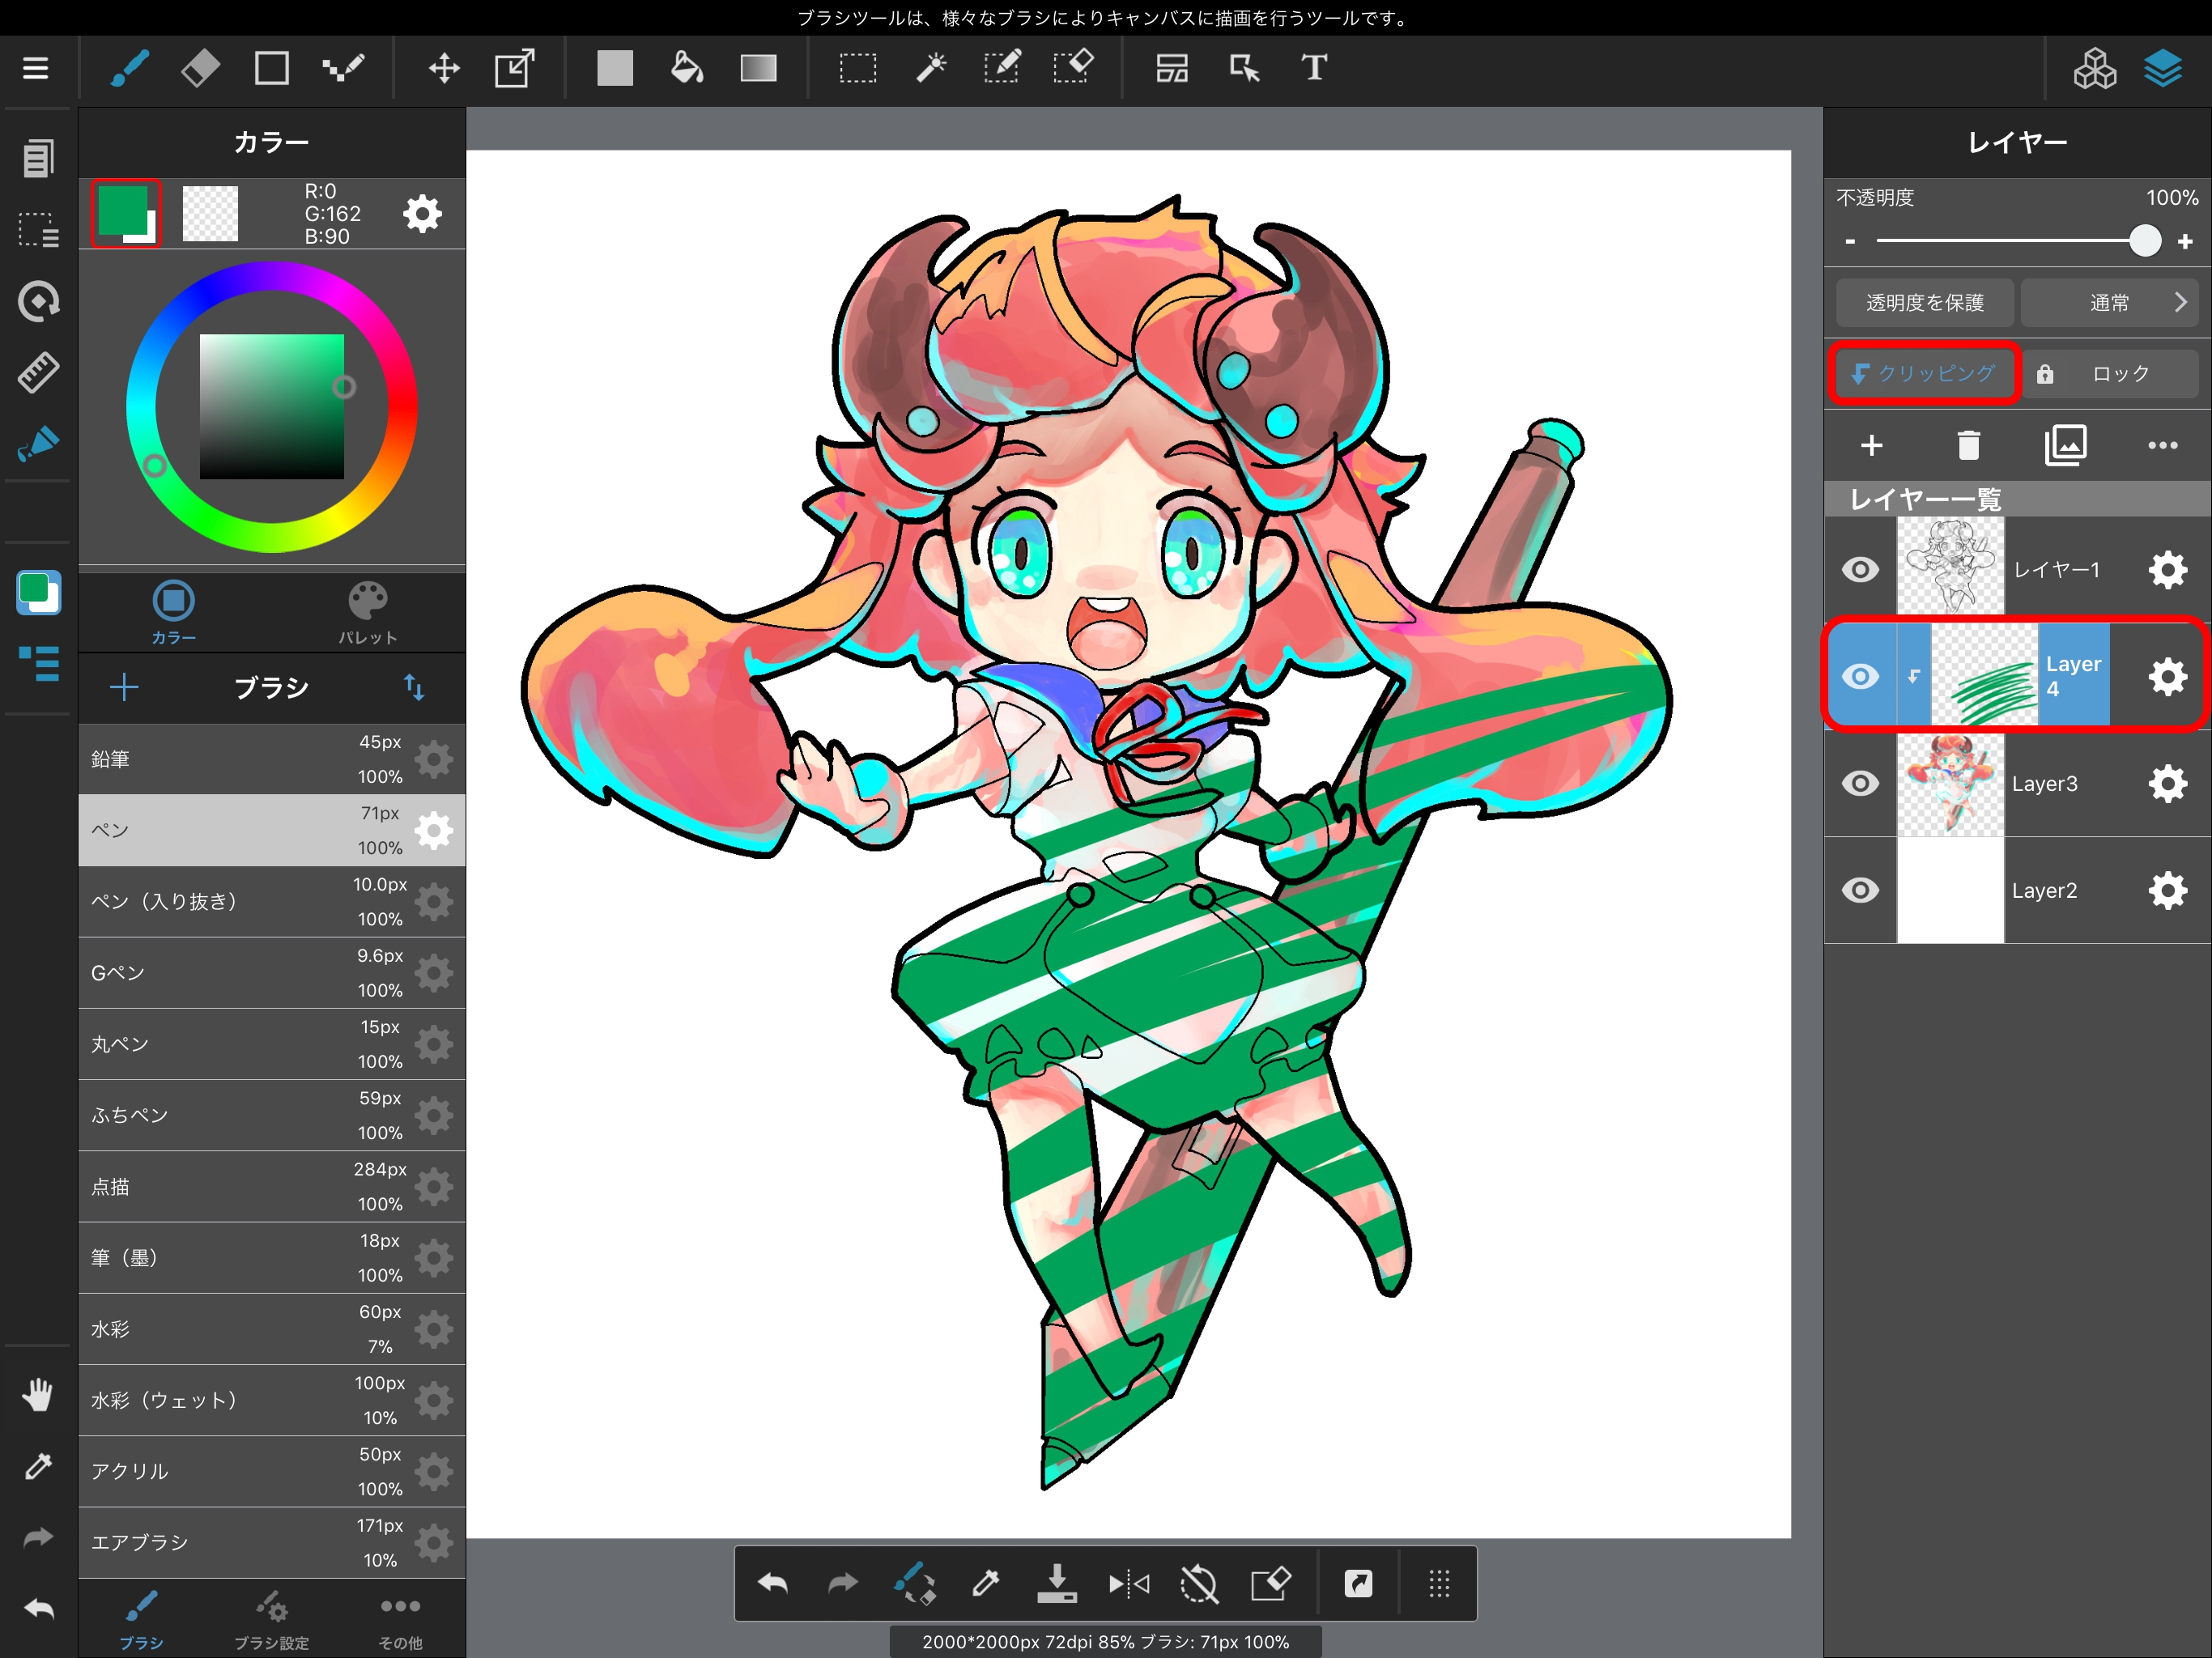 Drawing with clipping enabled